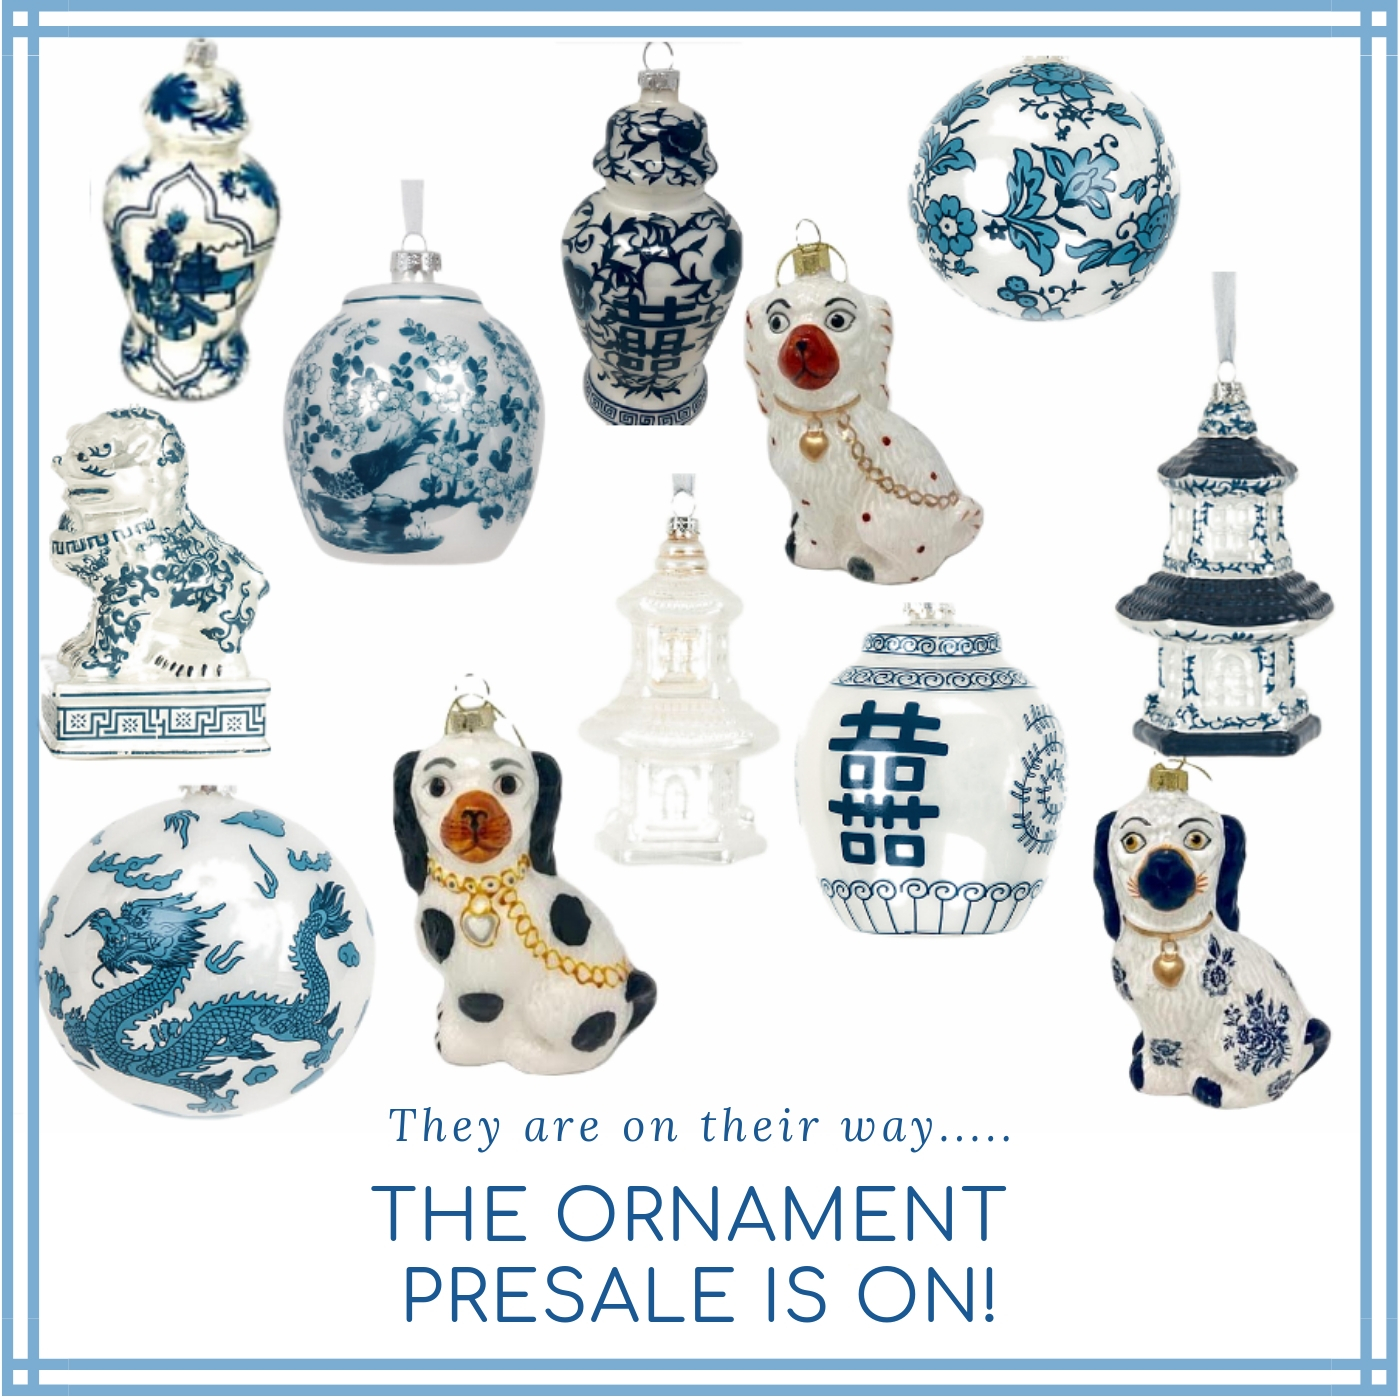 The much anticipated 2018 ornament presale is on and a giveaway!